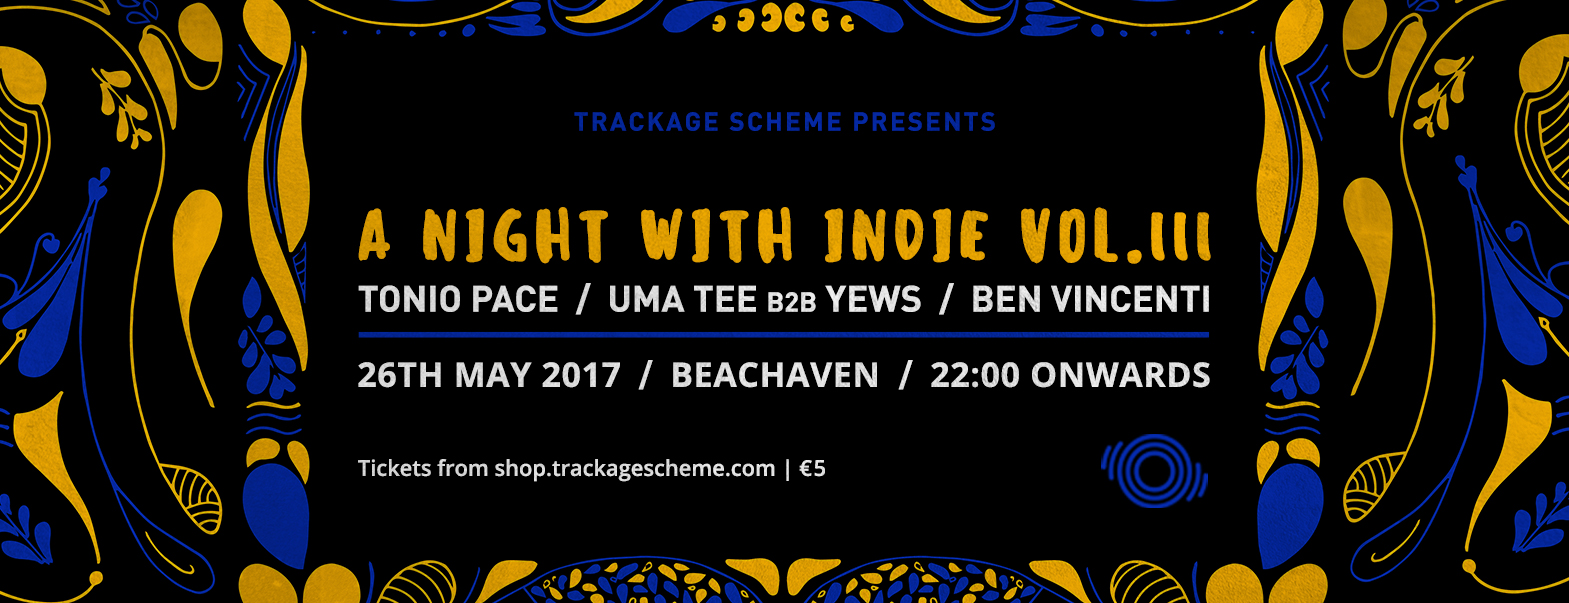 a night with indie volume 3 alternative event malta